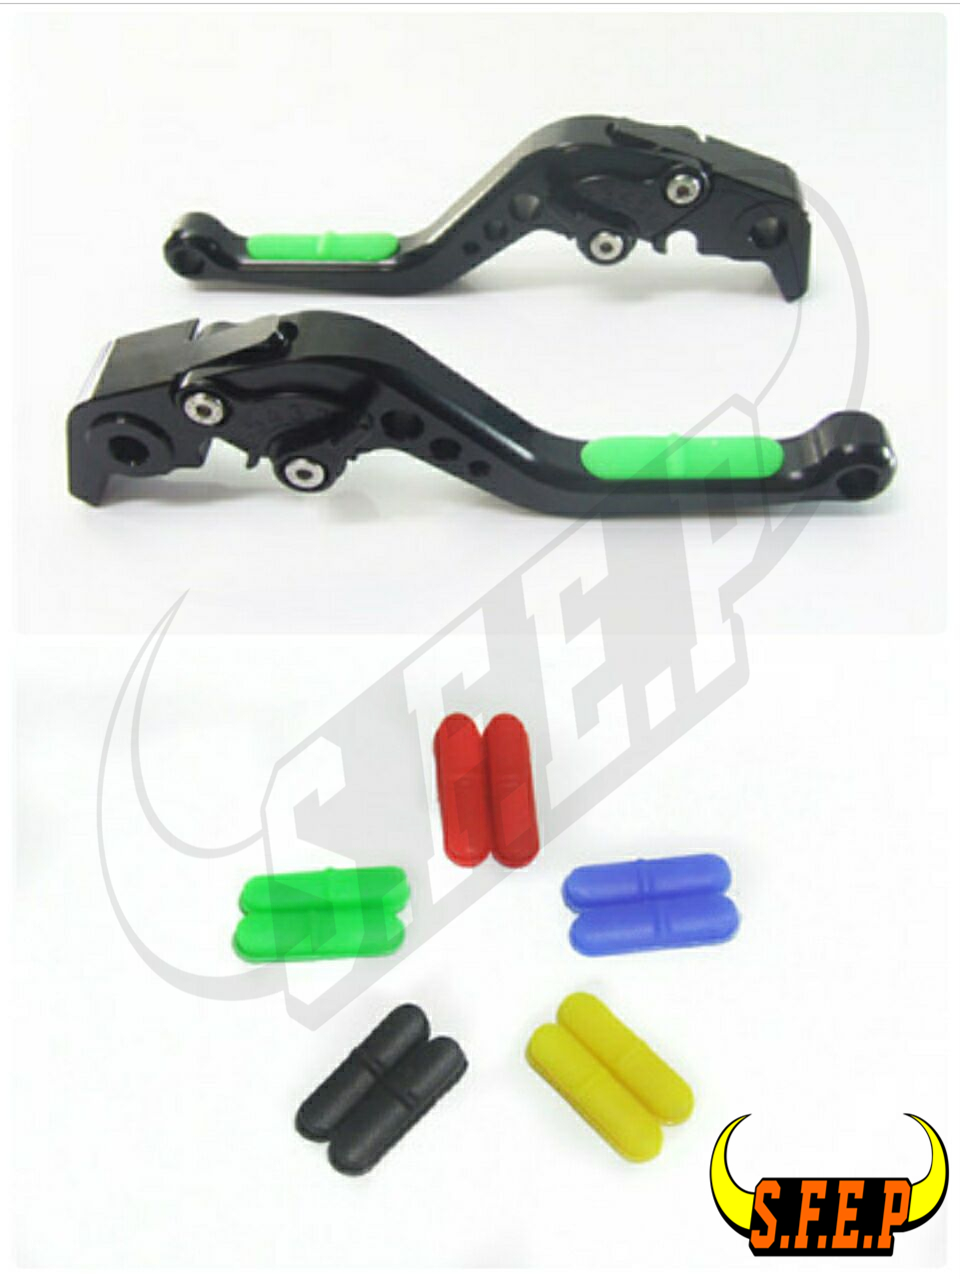 CNC Adjustable Motorcycle Brake and Clutch Levers with Anti-Slip For Ducati HYPERMOTARD 1100/S/EVO SP 2007-2012